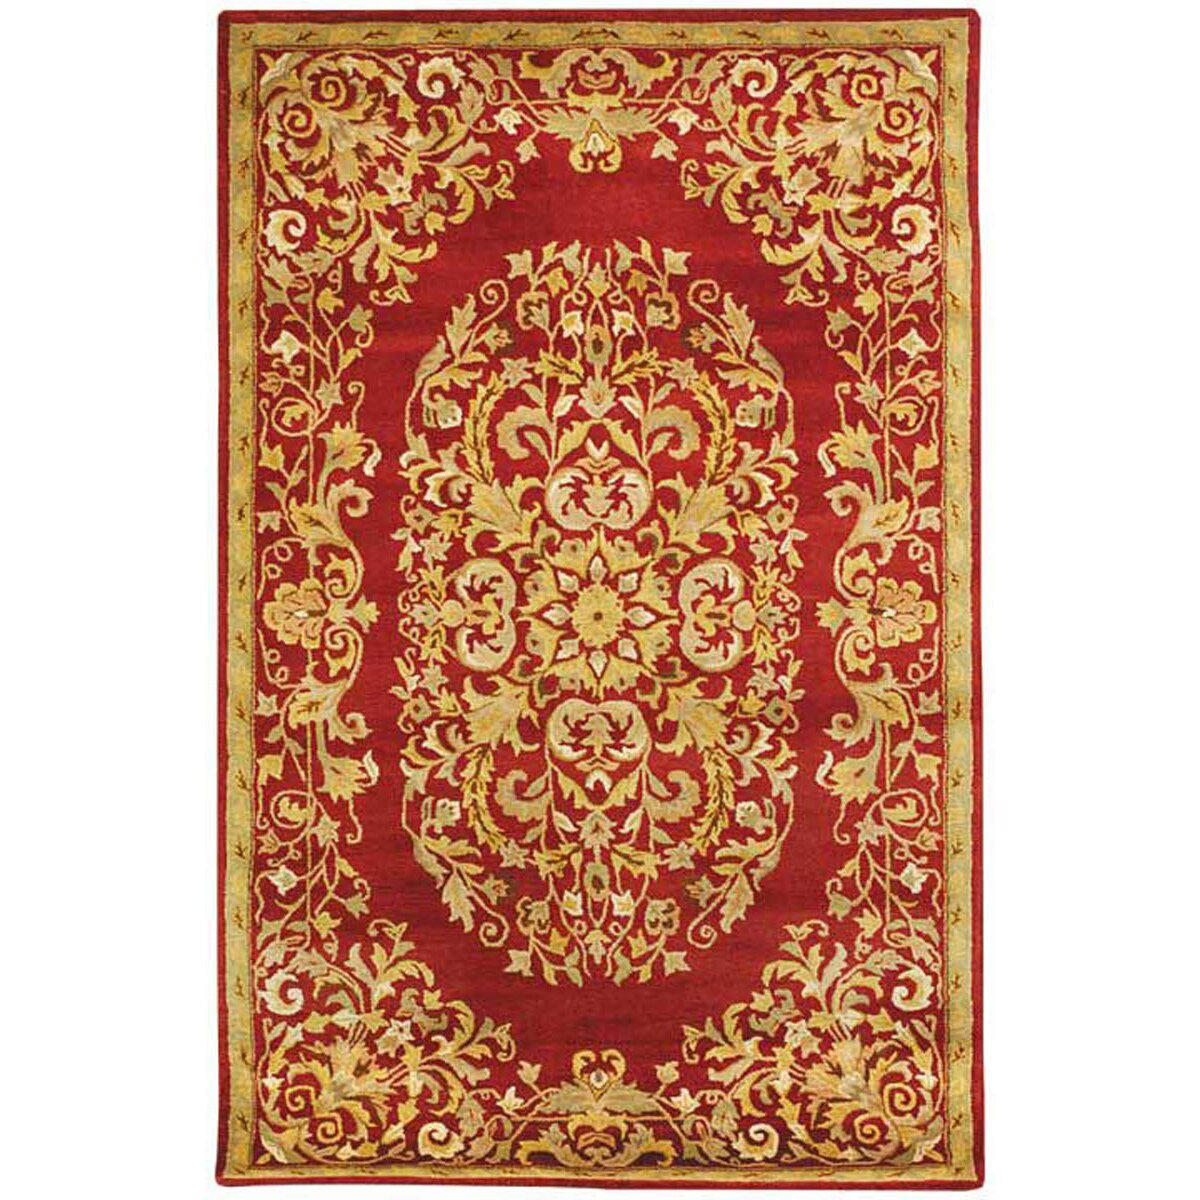 Astoria grand balthrop red yellow floral area rug wayfair for Red floral area rug